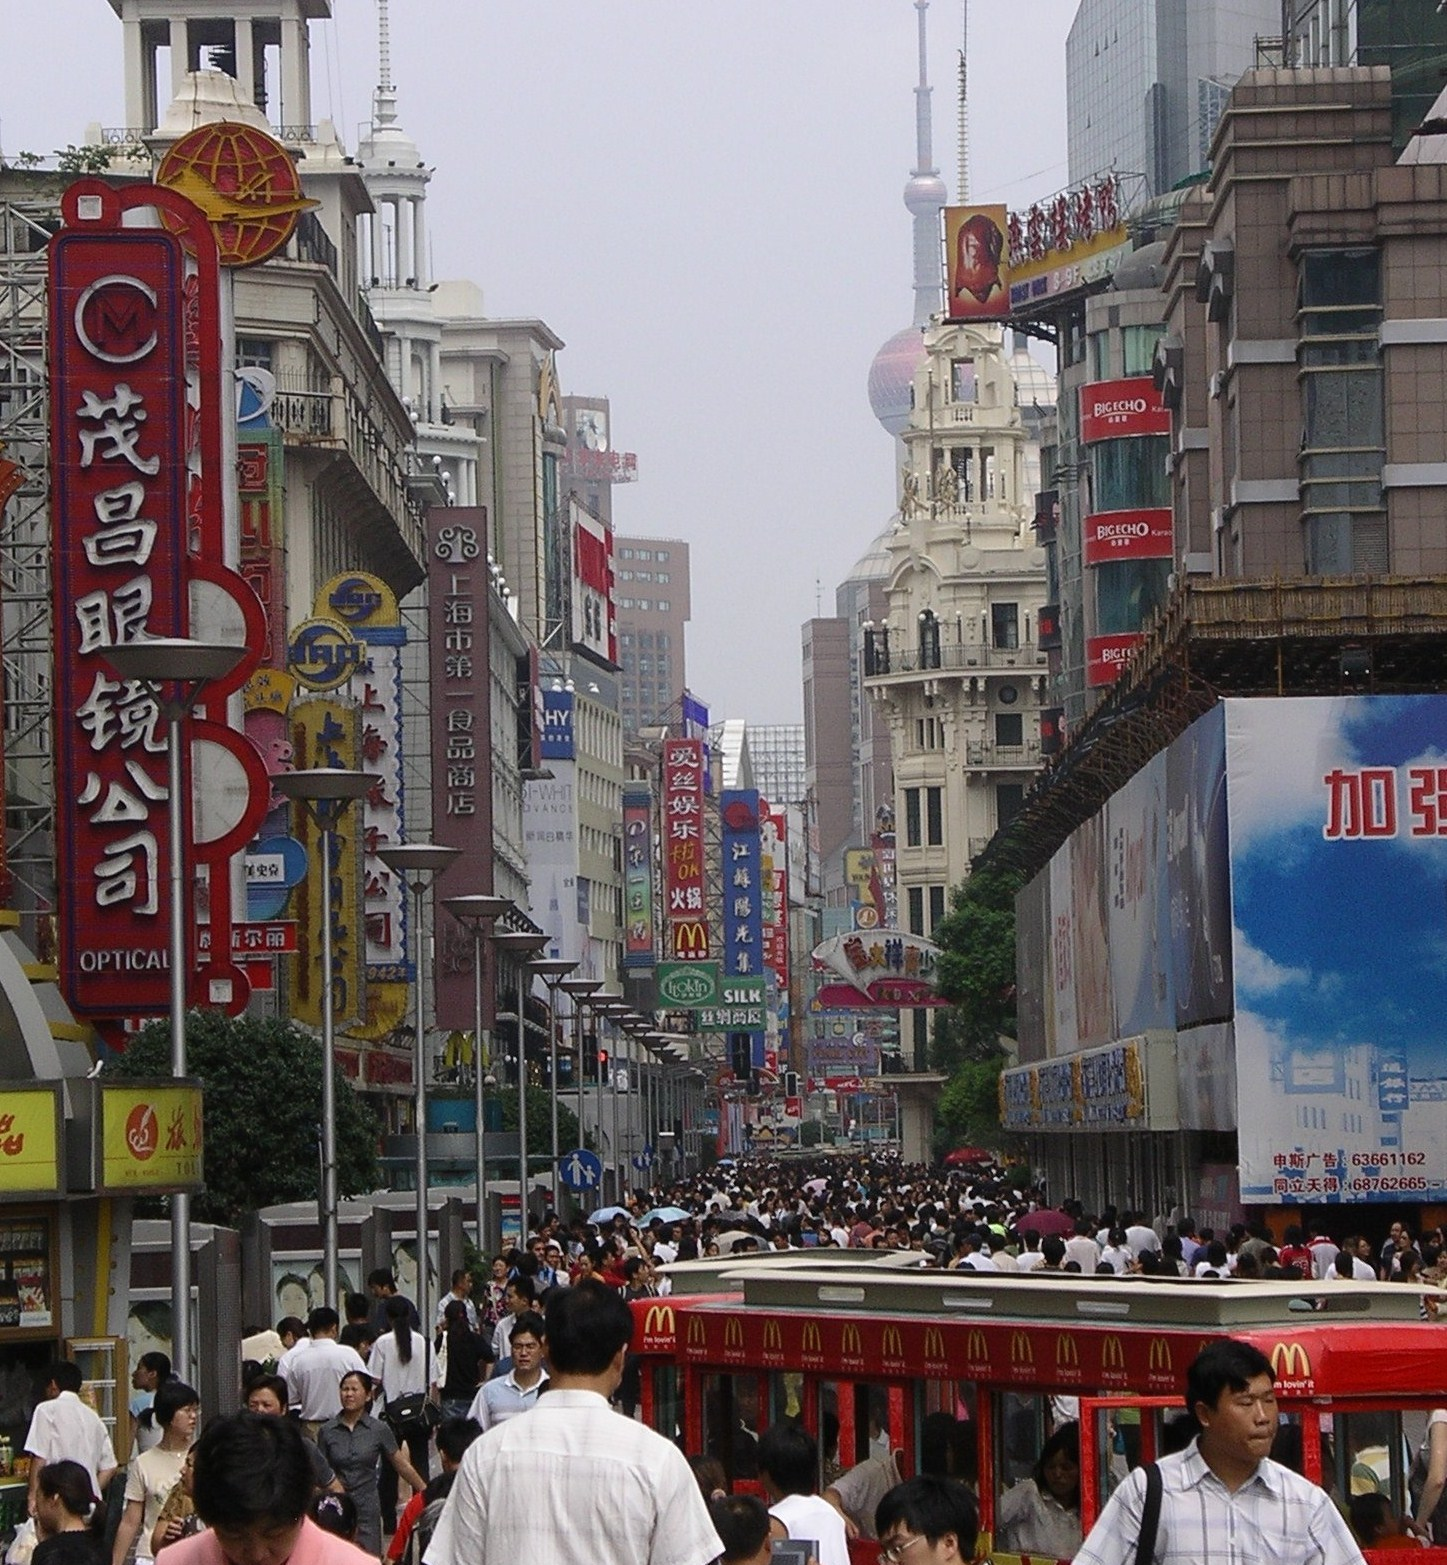 overpopulation in china and india Population control and consequences in china outline problems associated with overpopulation population policy china's population control policy other population control methods problems associated with population policies social and political consequences.